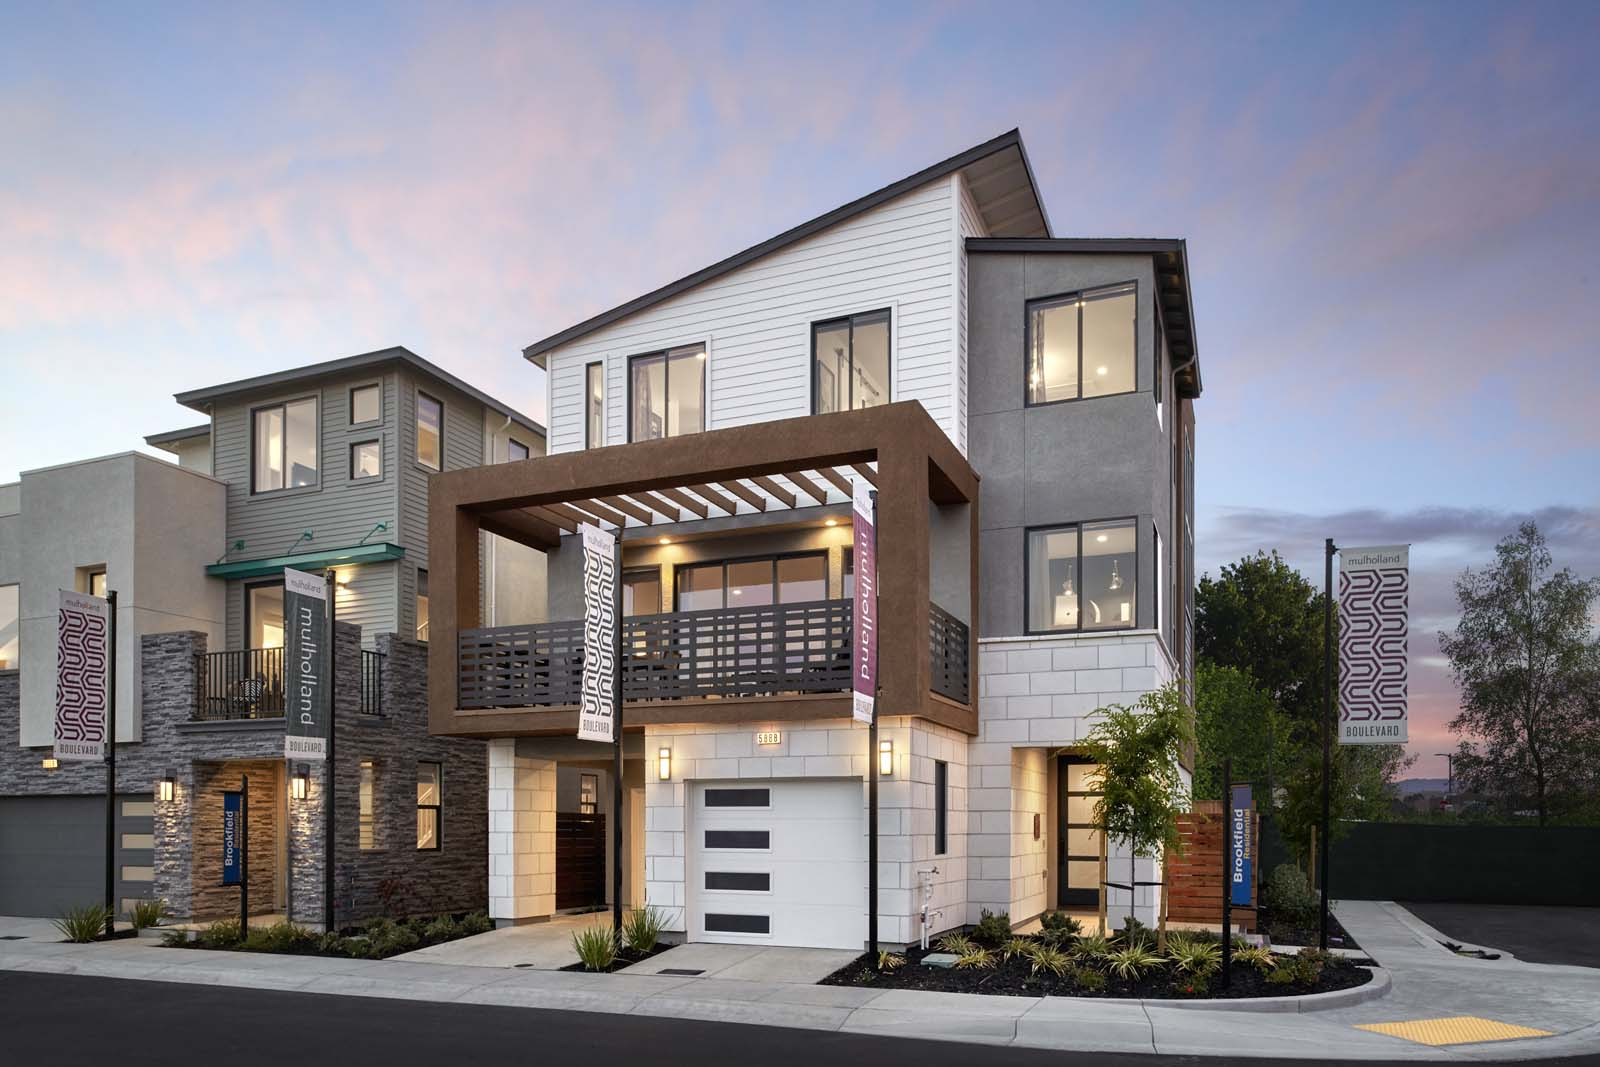 Mulholland at Boulevard - Real estate for sale in Dublin, CA